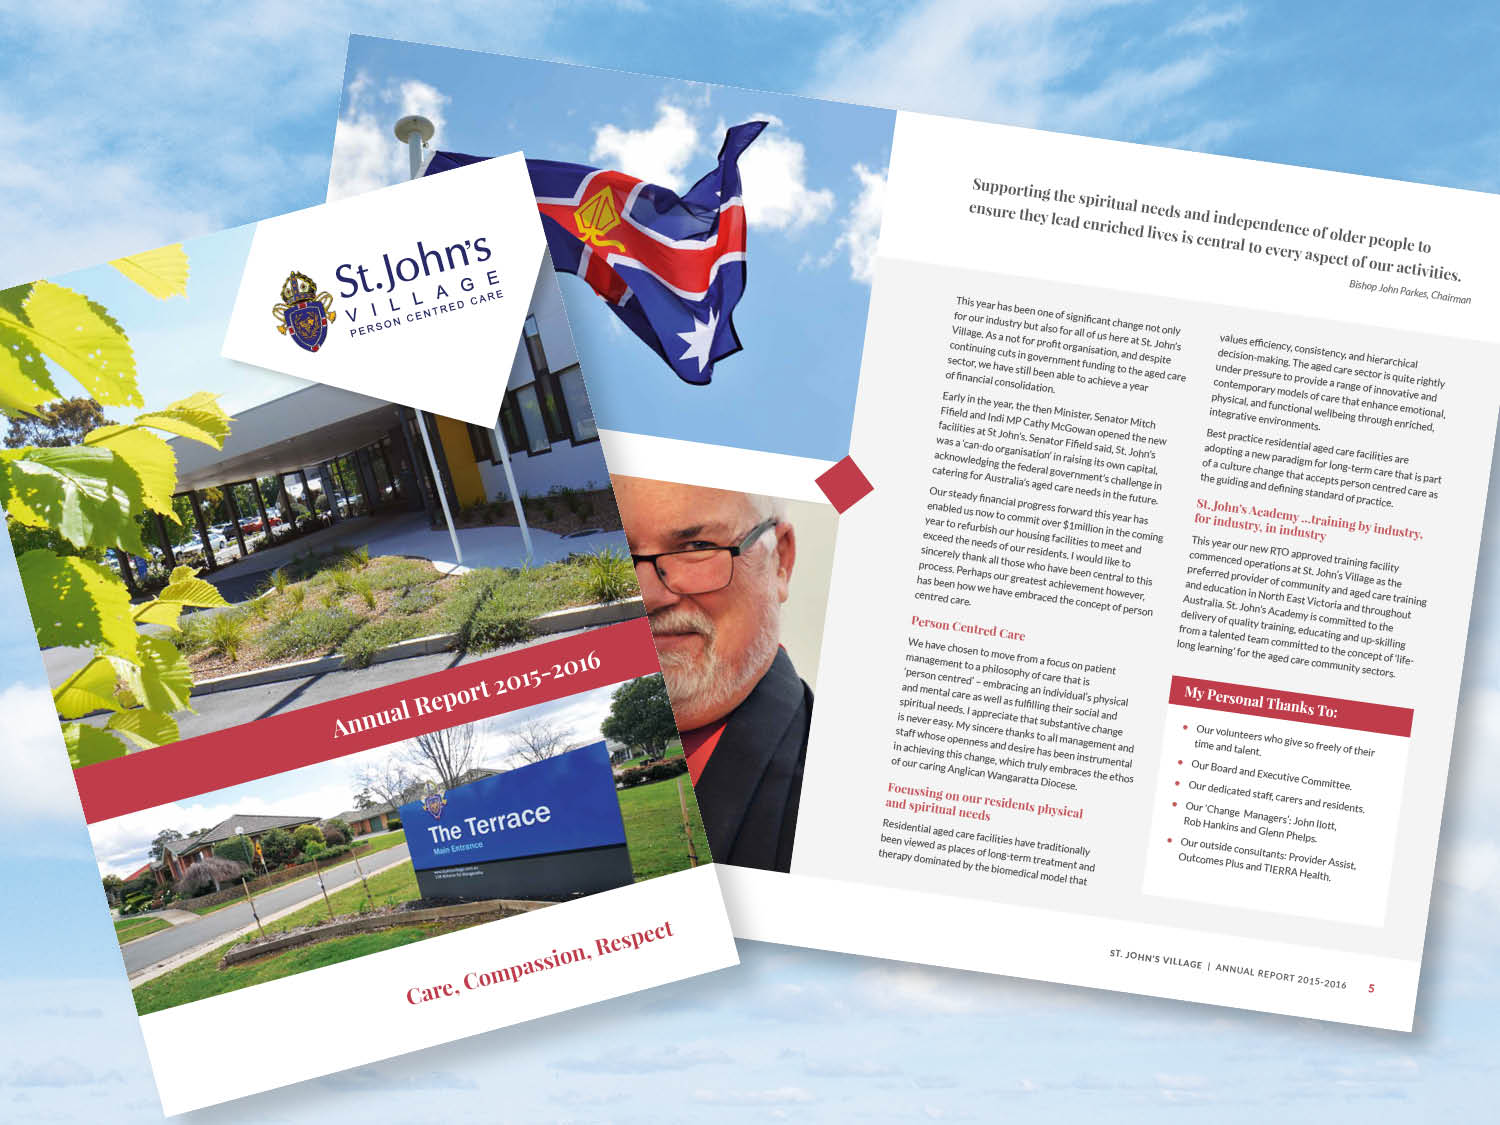 St. John's Village – Annual Report 2016